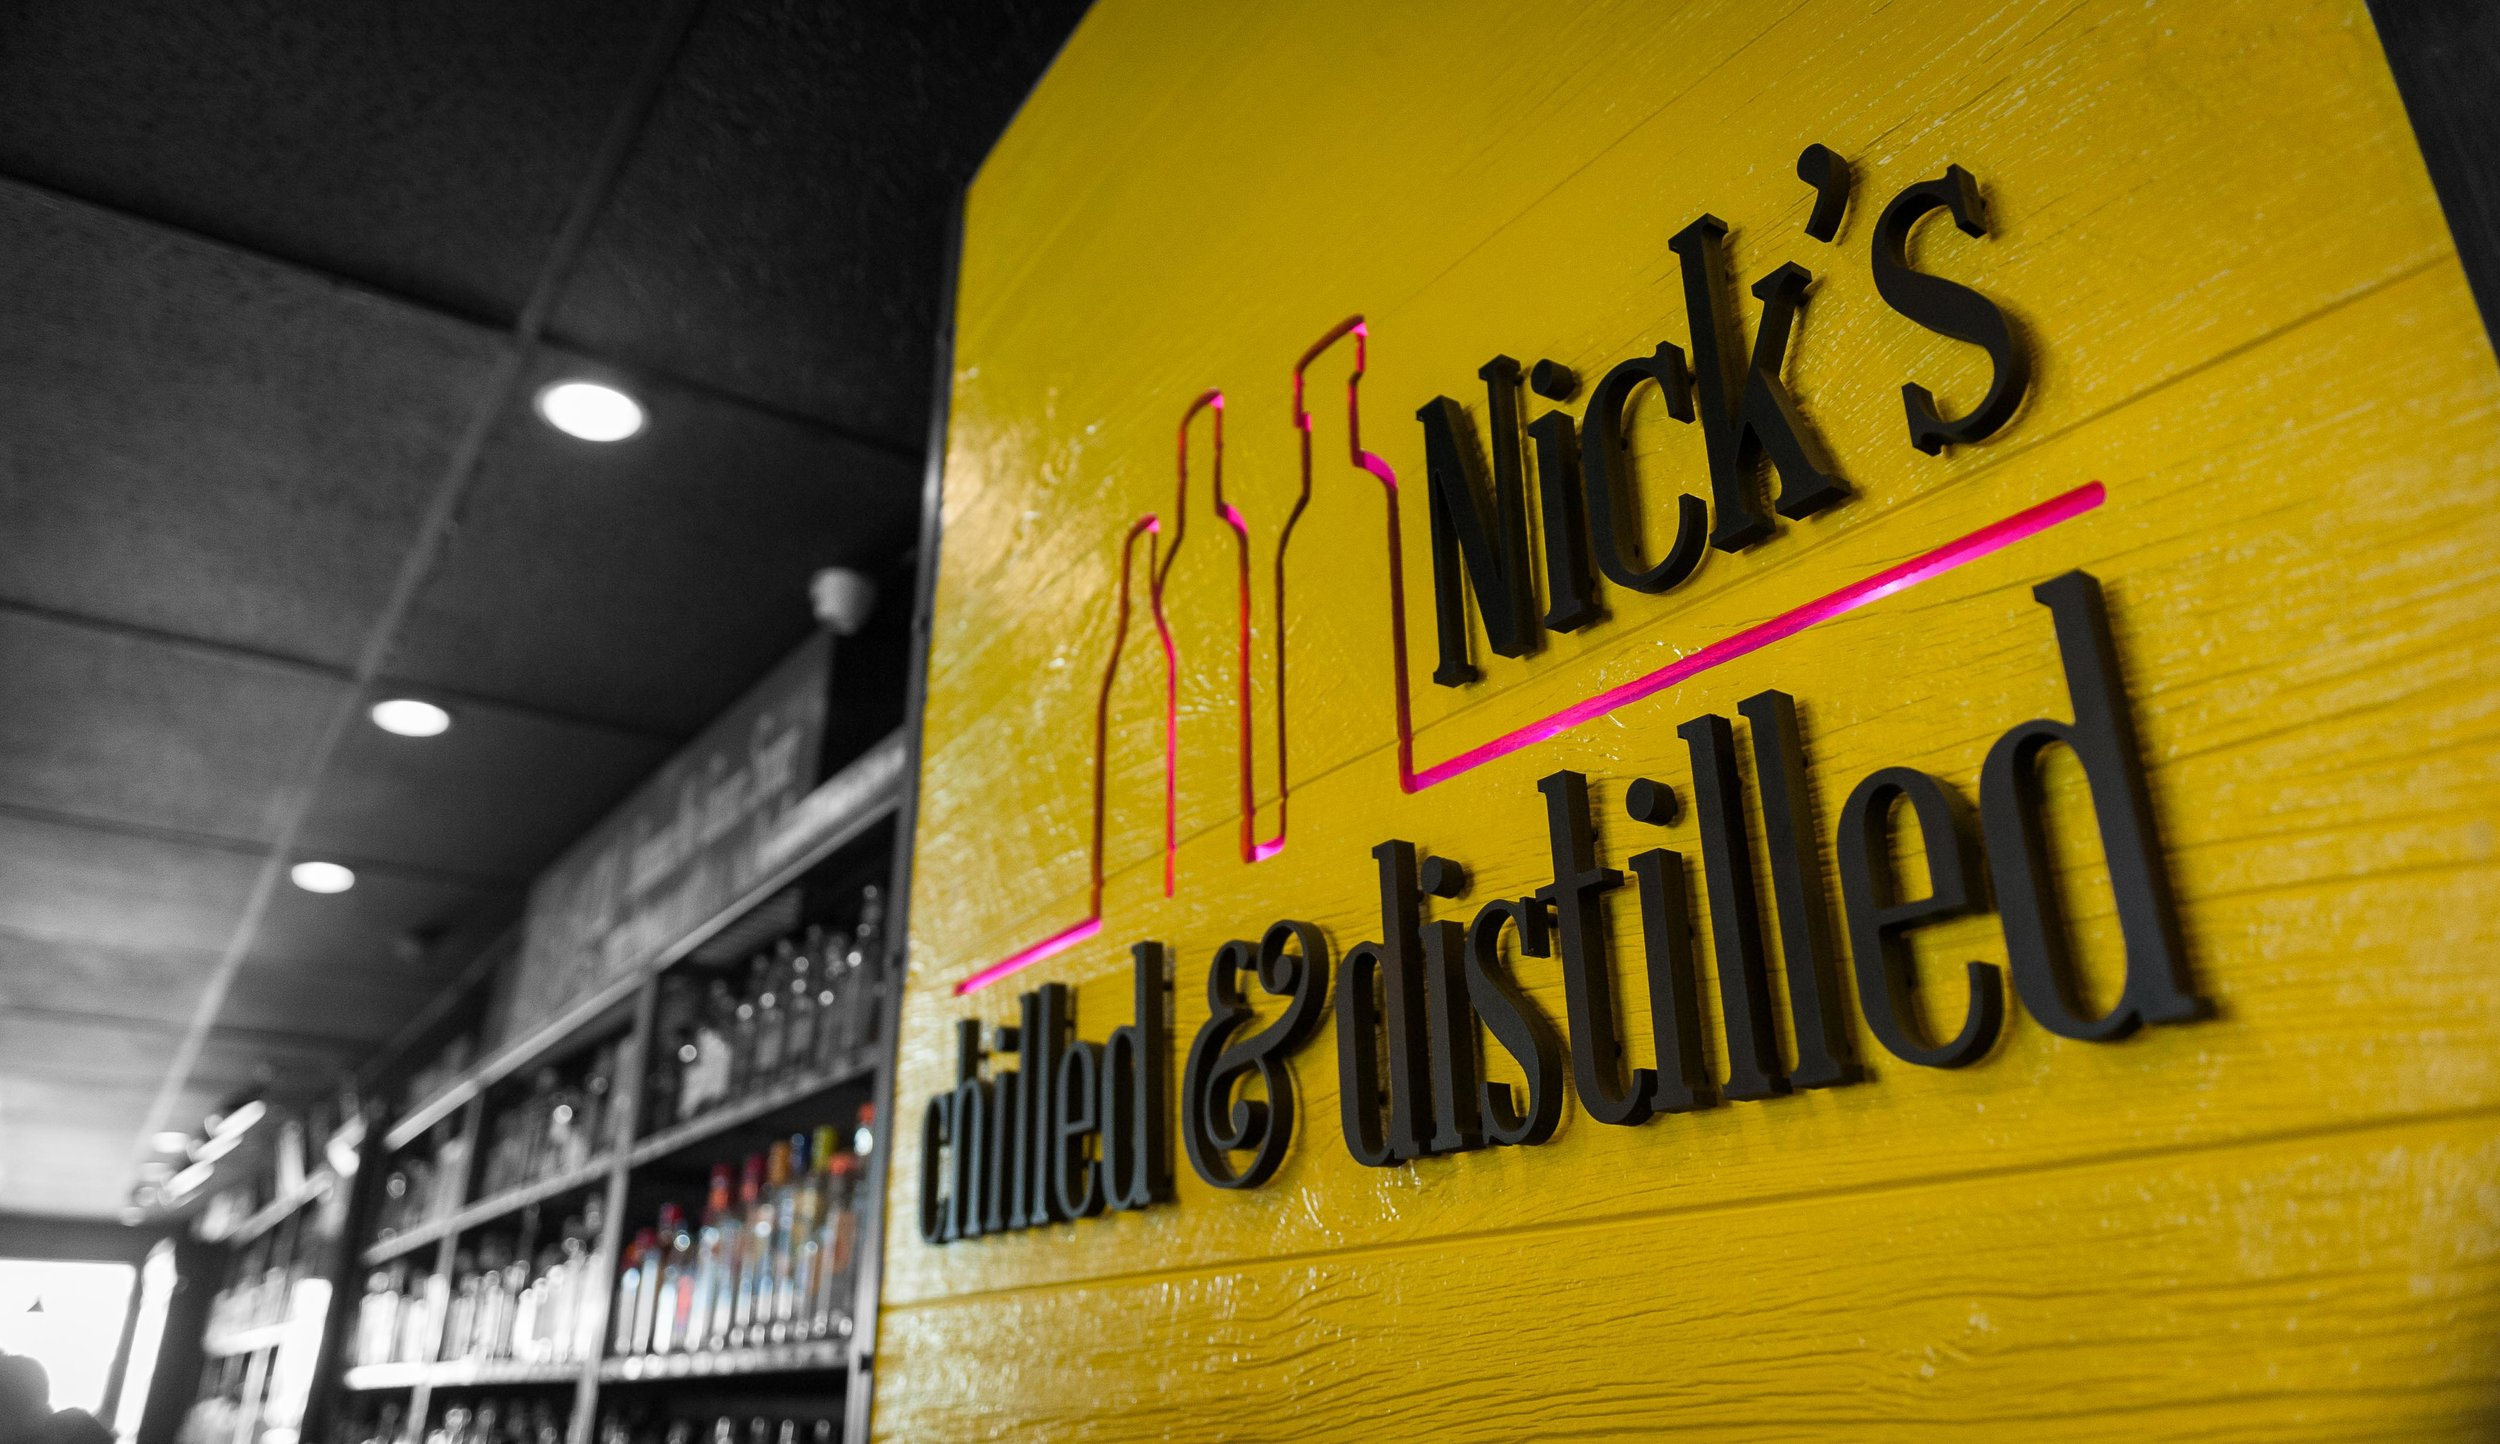 Nicks Chilled & Distilled sign